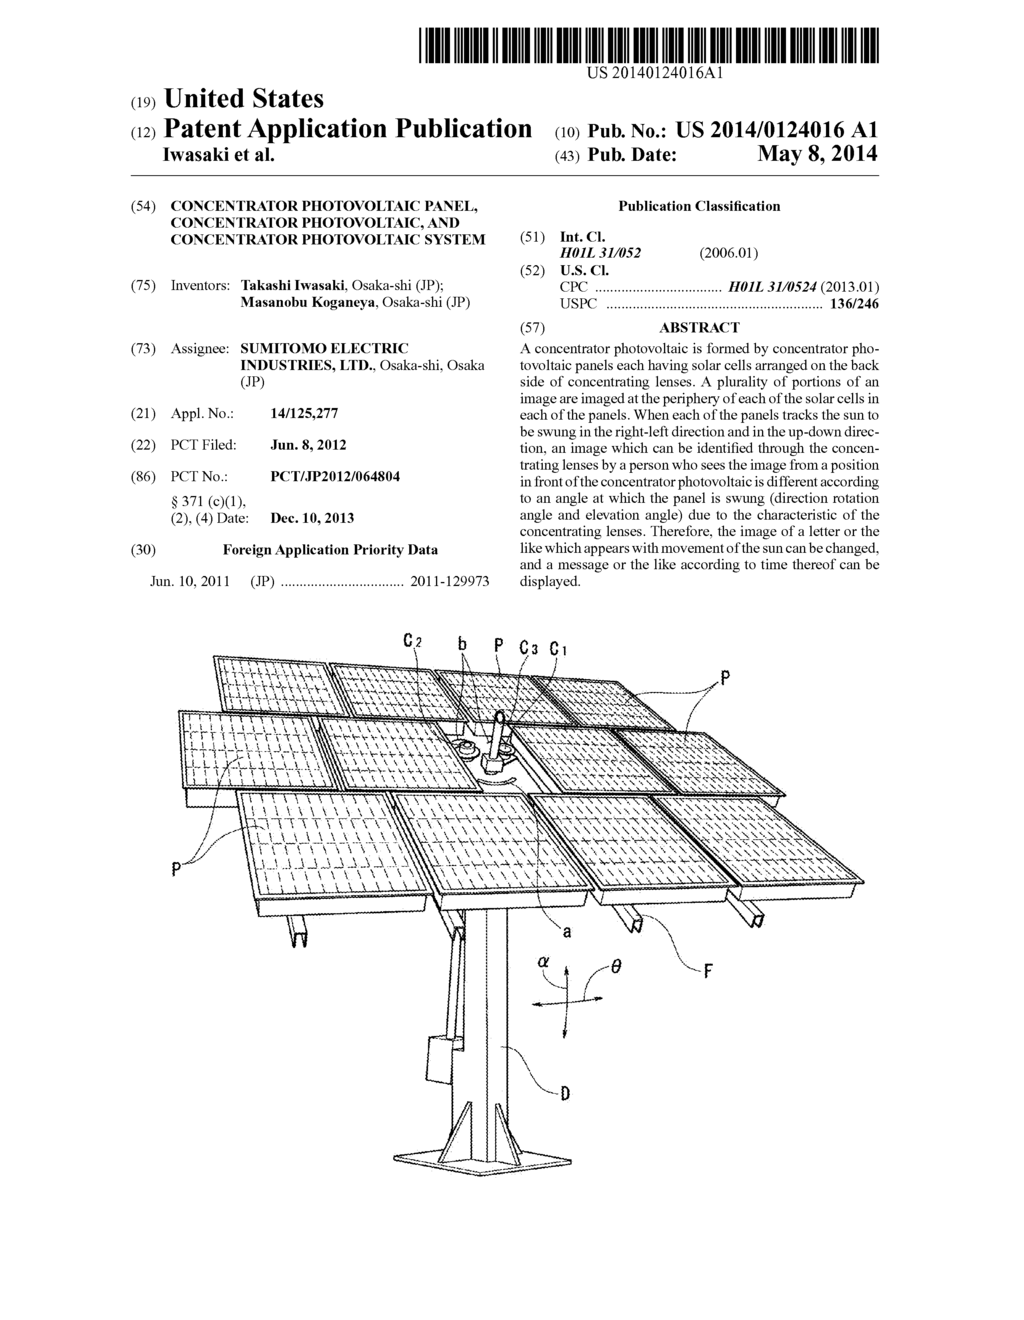 CONCENTRATOR PHOTOVOLTAIC PANEL, CONCENTRATOR PHOTOVOLTAIC, AND ...